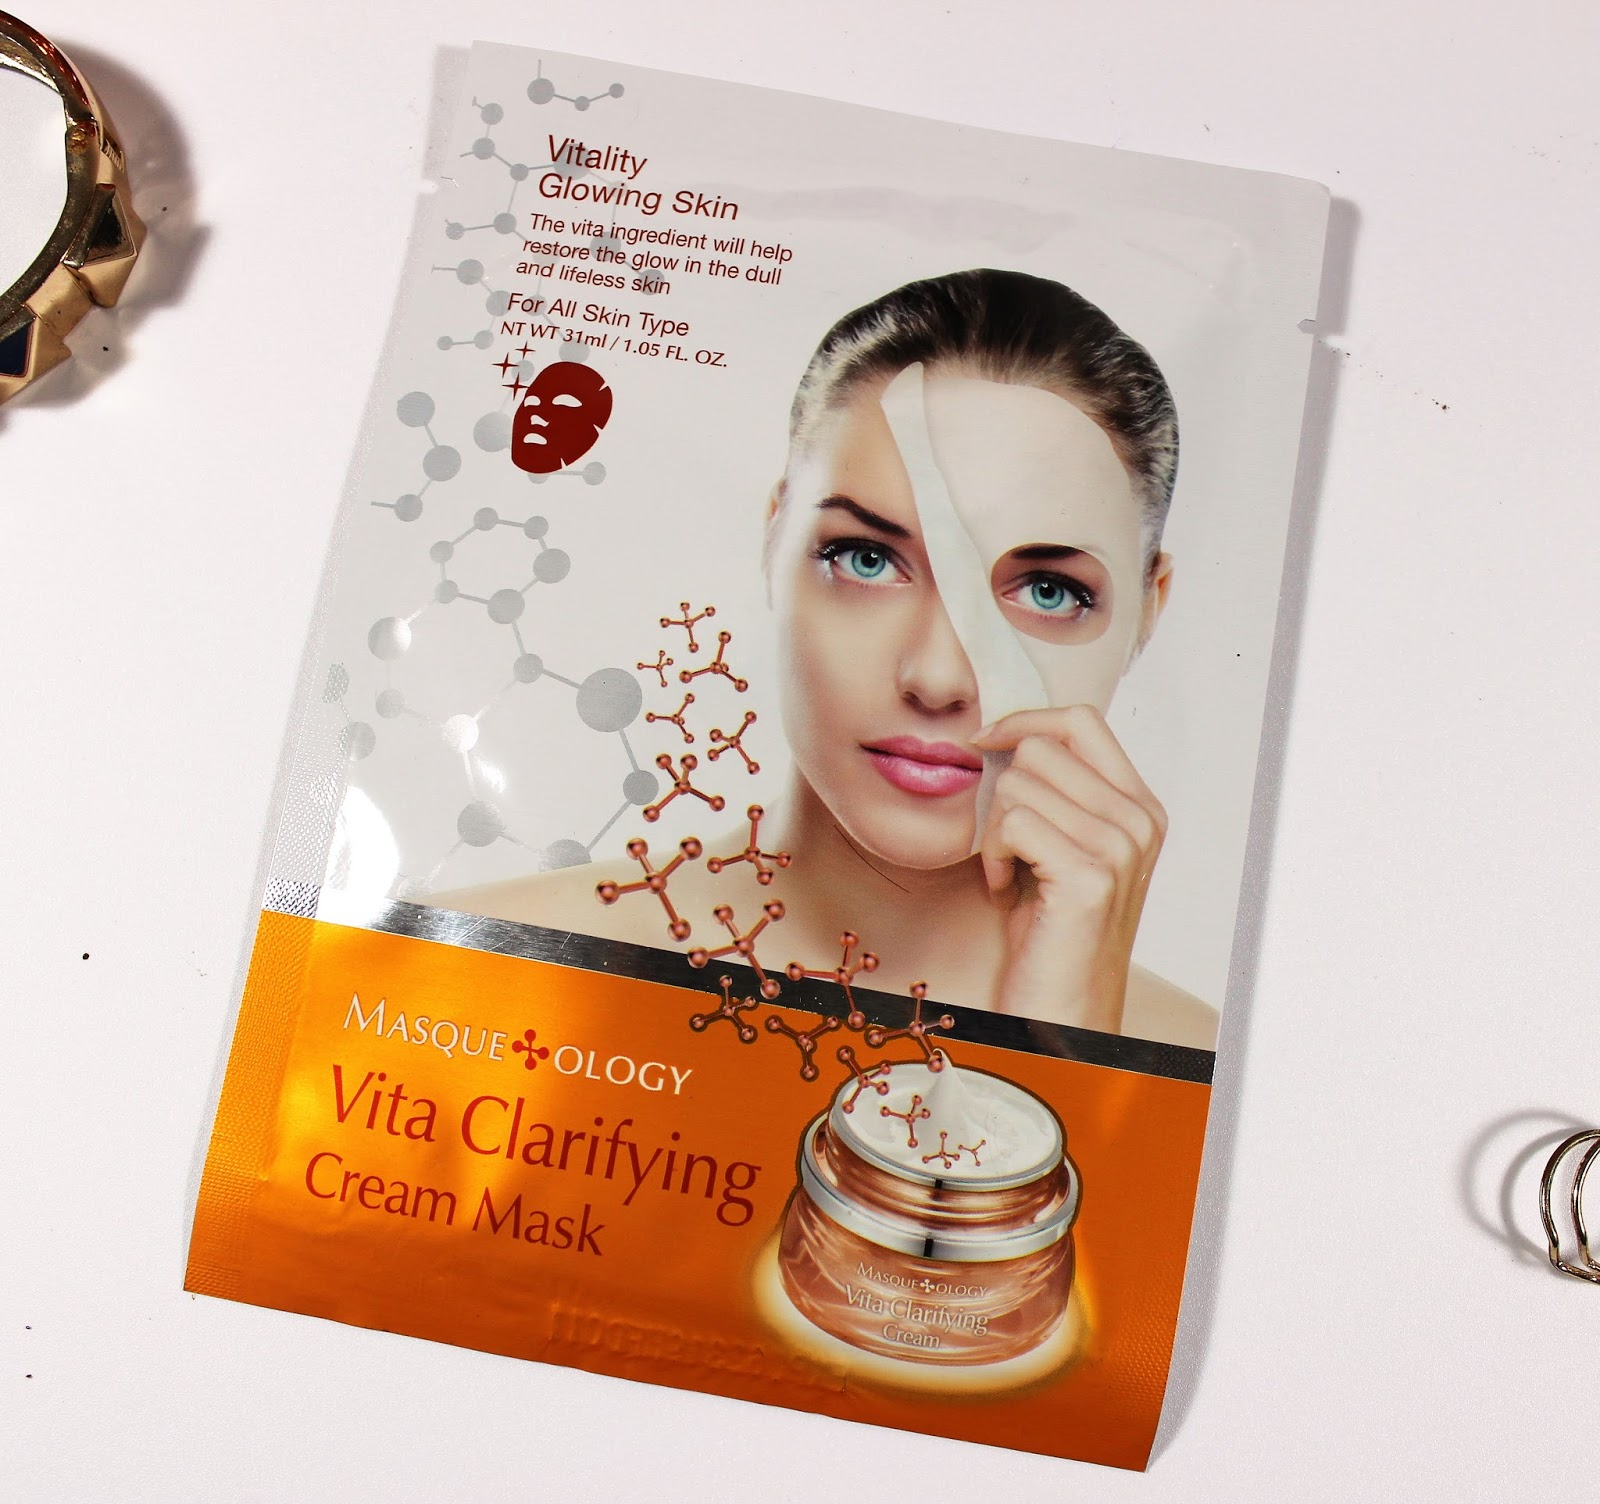 Vita Clarifying Cream Mask Review